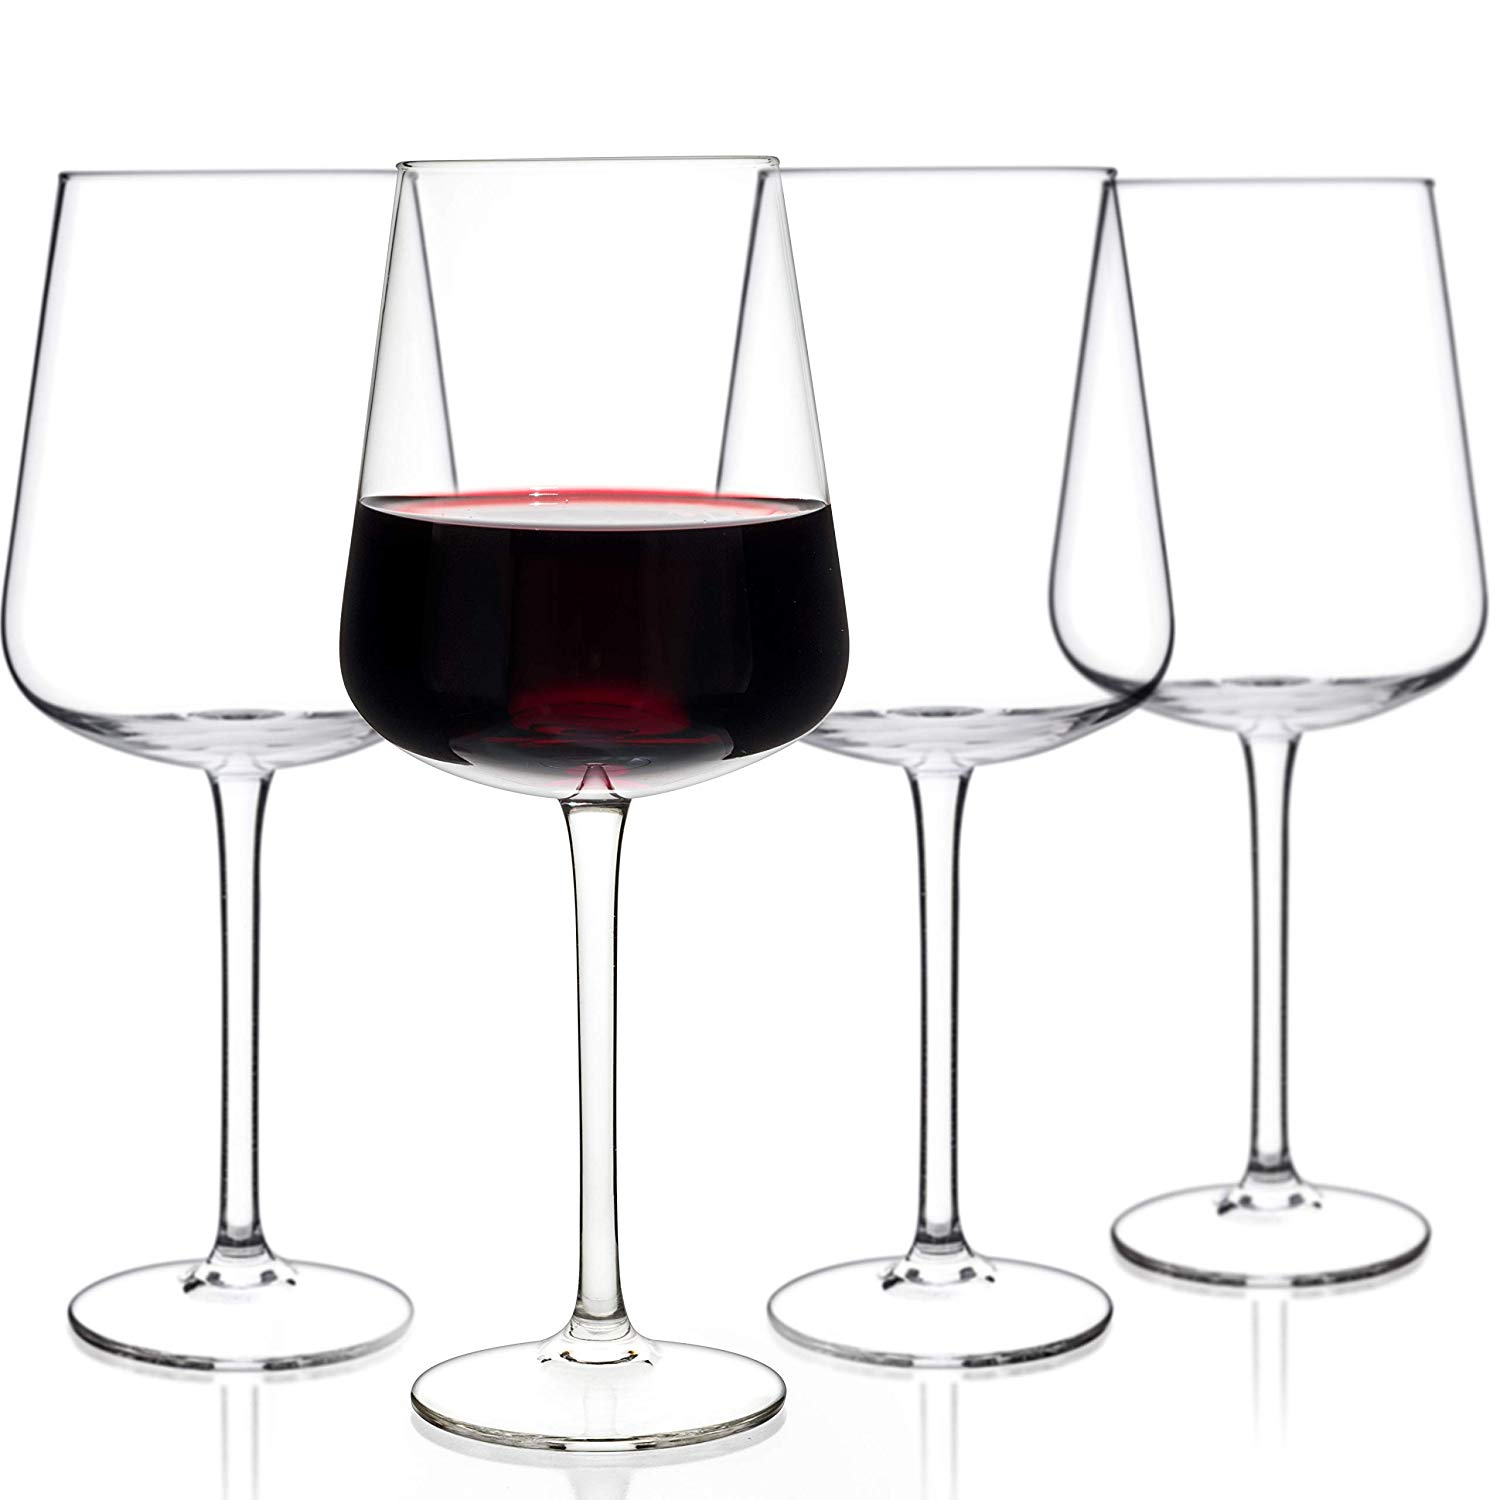 Luxbe - Crystal Wine Glasses, Set of 4 - Handcrafted Red or White Wine Glass - 100% Lead Free Crystal Clear Glass - Professional Wine Tasting - Burgundy - Pinot Noir - Bordeaux - 16-ounce